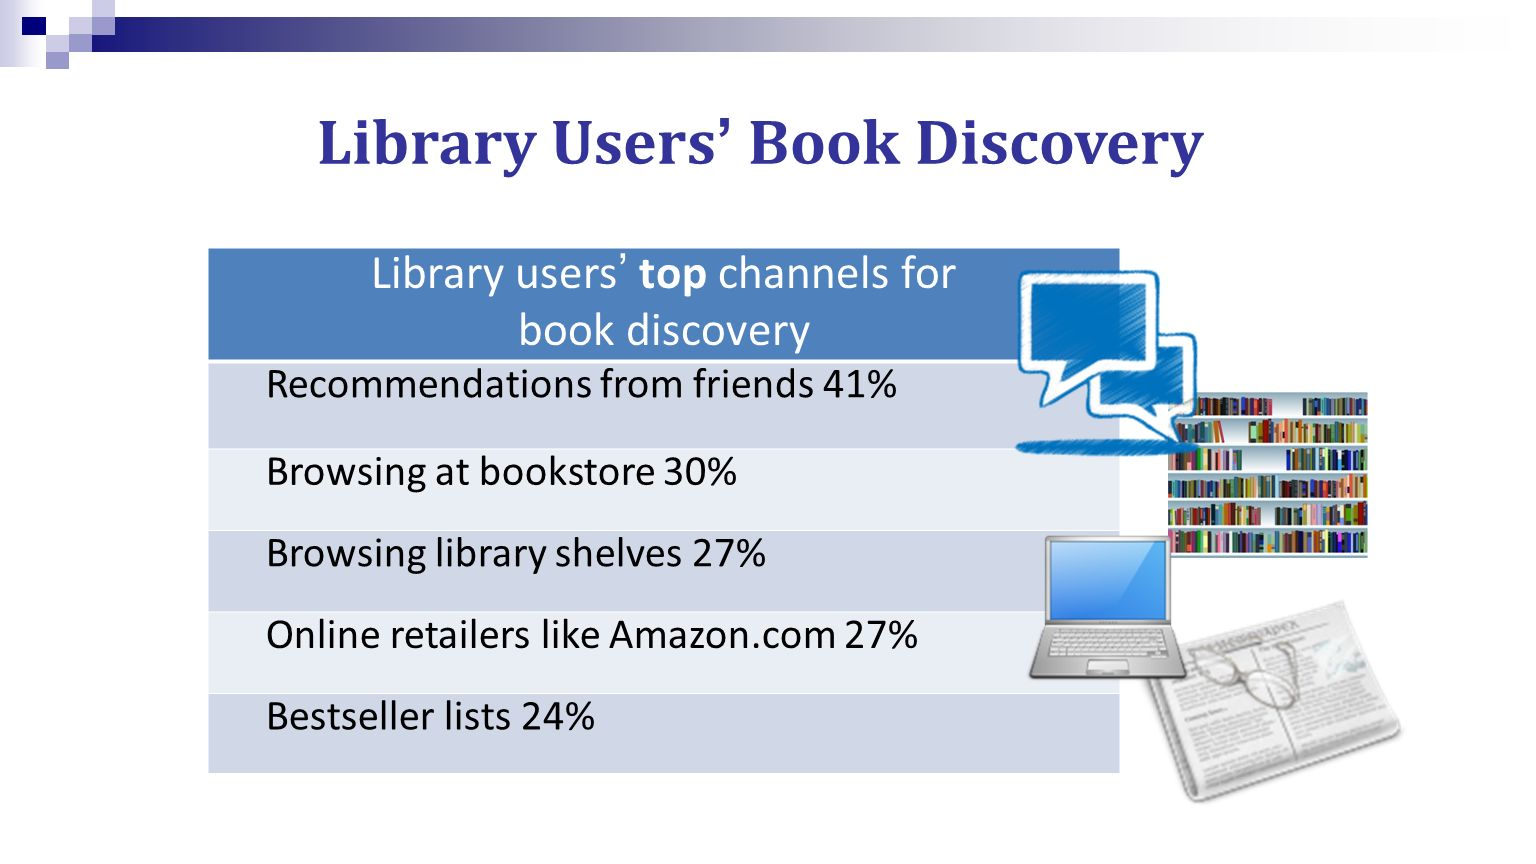 Library Users Book Discovery Library users top channels for book discovery Recommendations from friends 41% Browsing at bookstore 30% Browsing library shelves 27% Online retailers like Amazon.com 27% Bestseller lists 24%